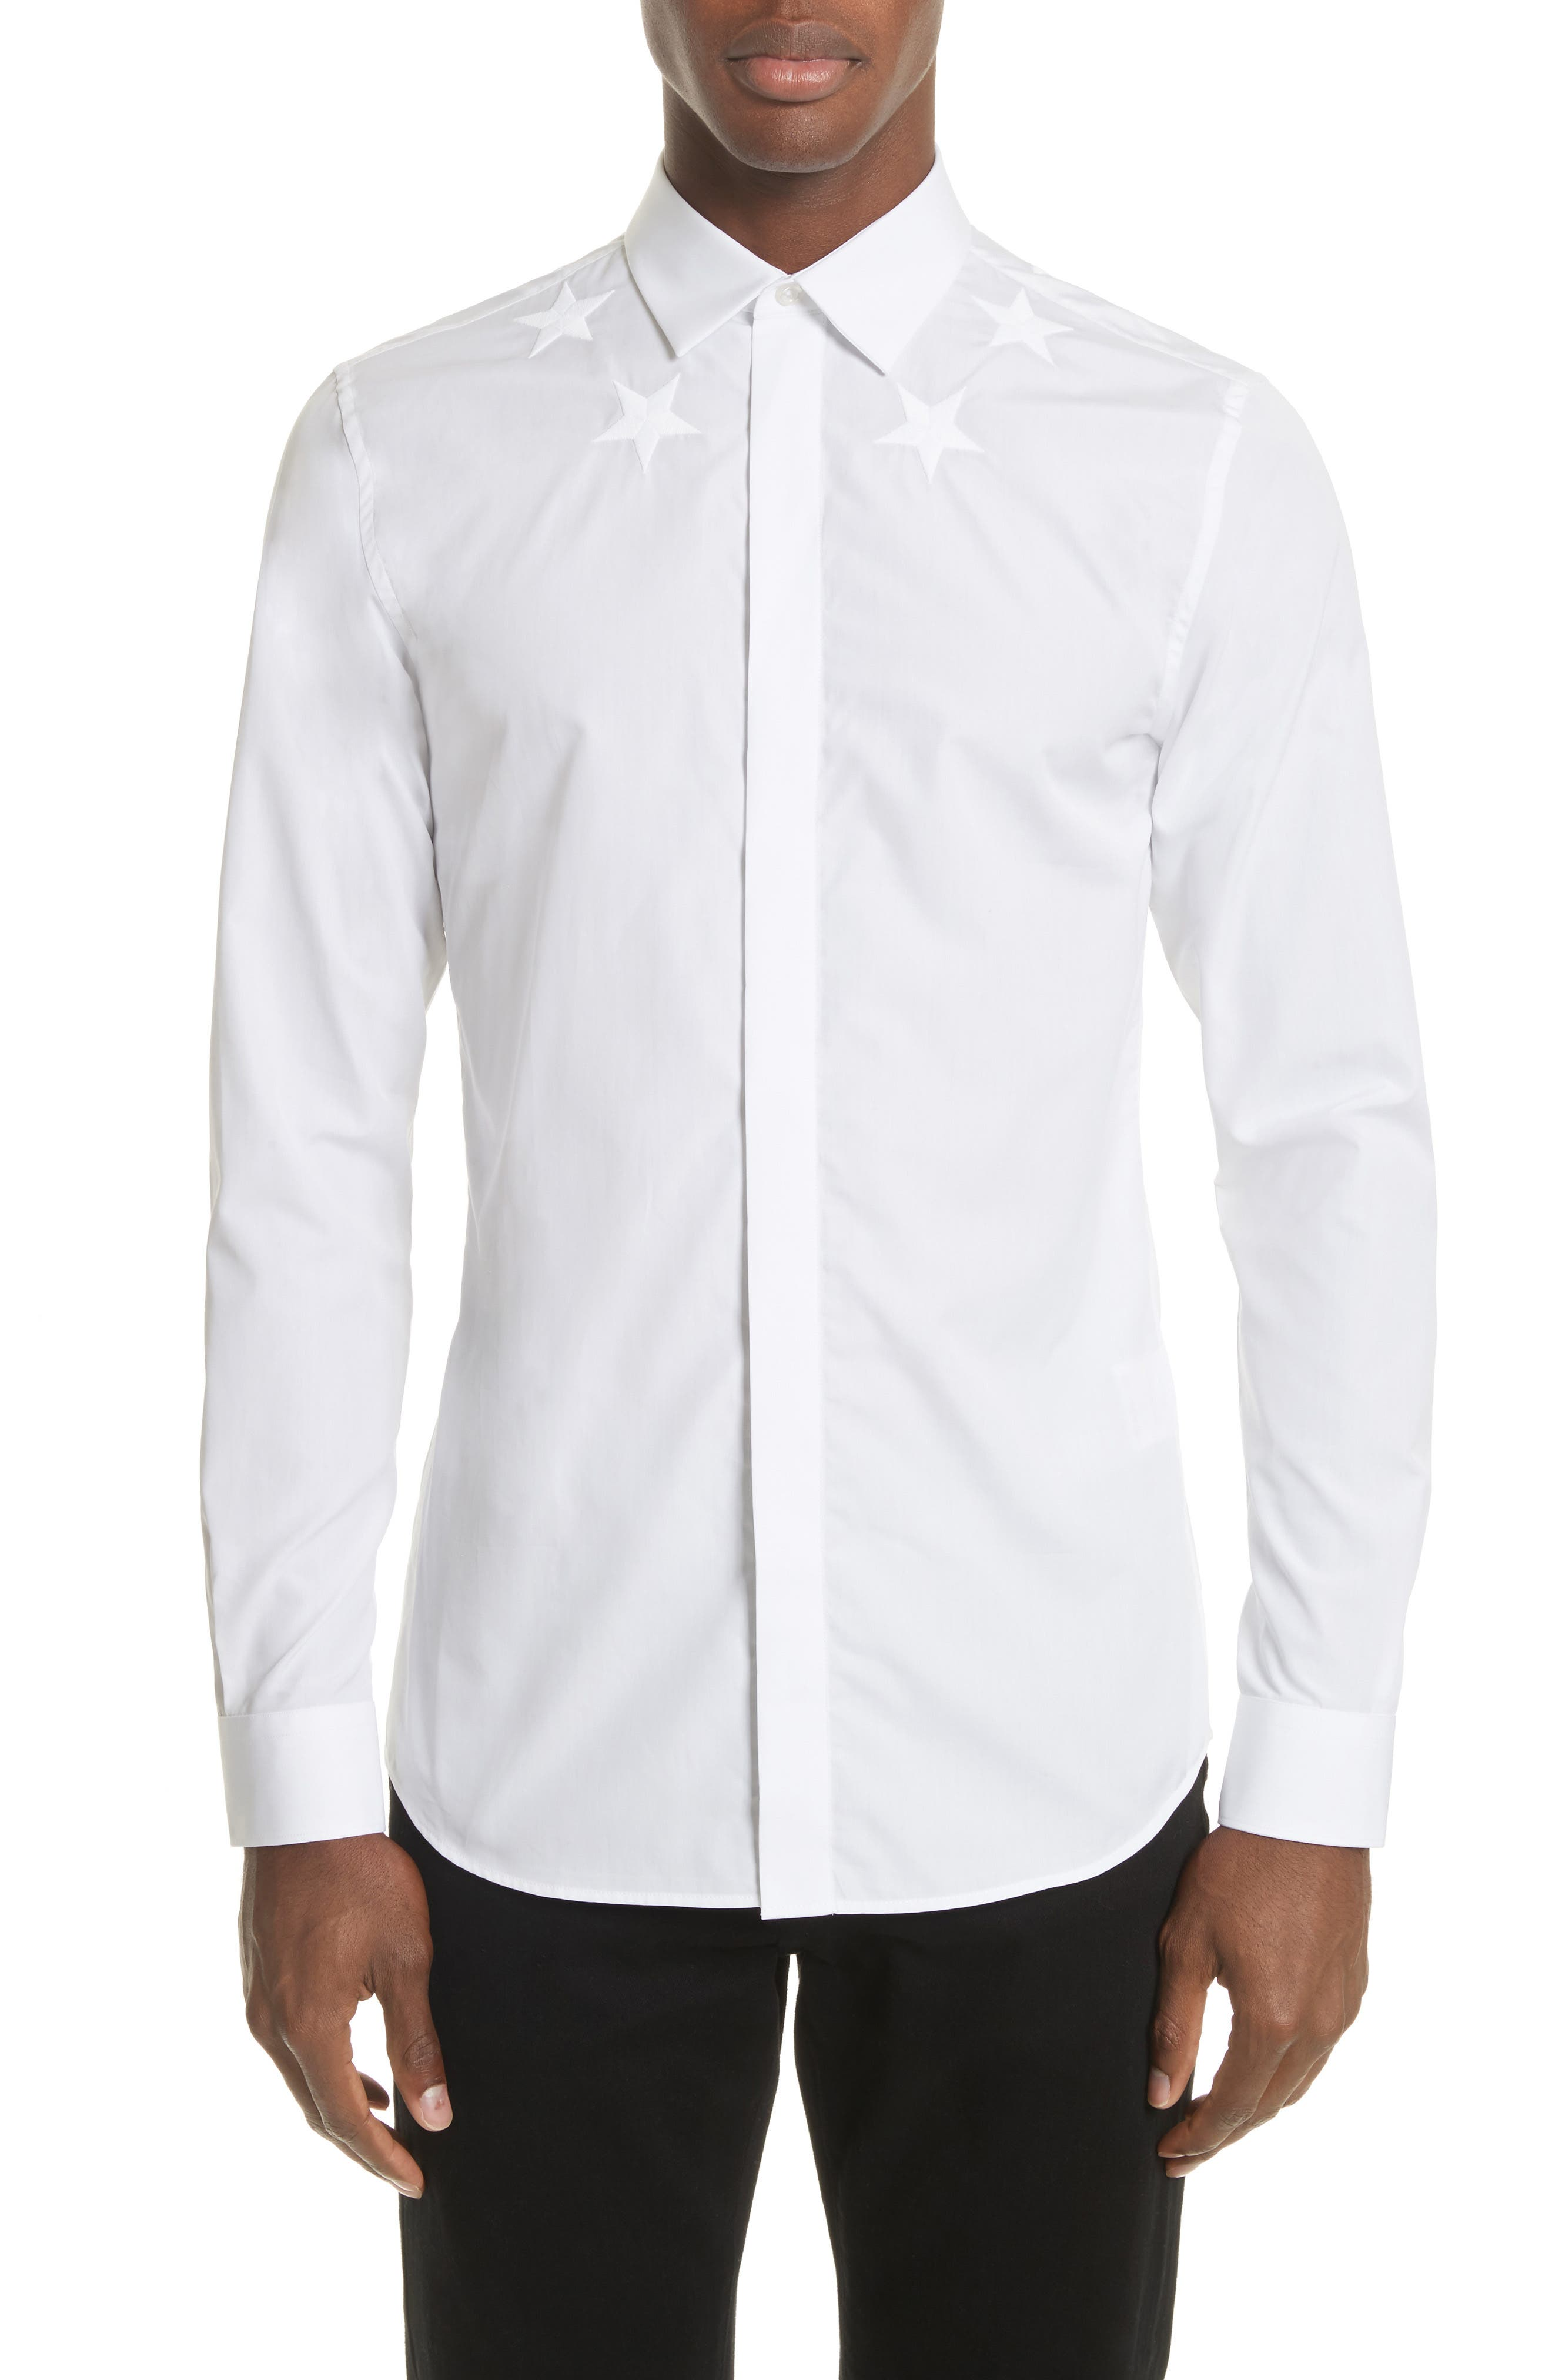 Embroidered Star Dress Shirt,                         Main,                         color, White